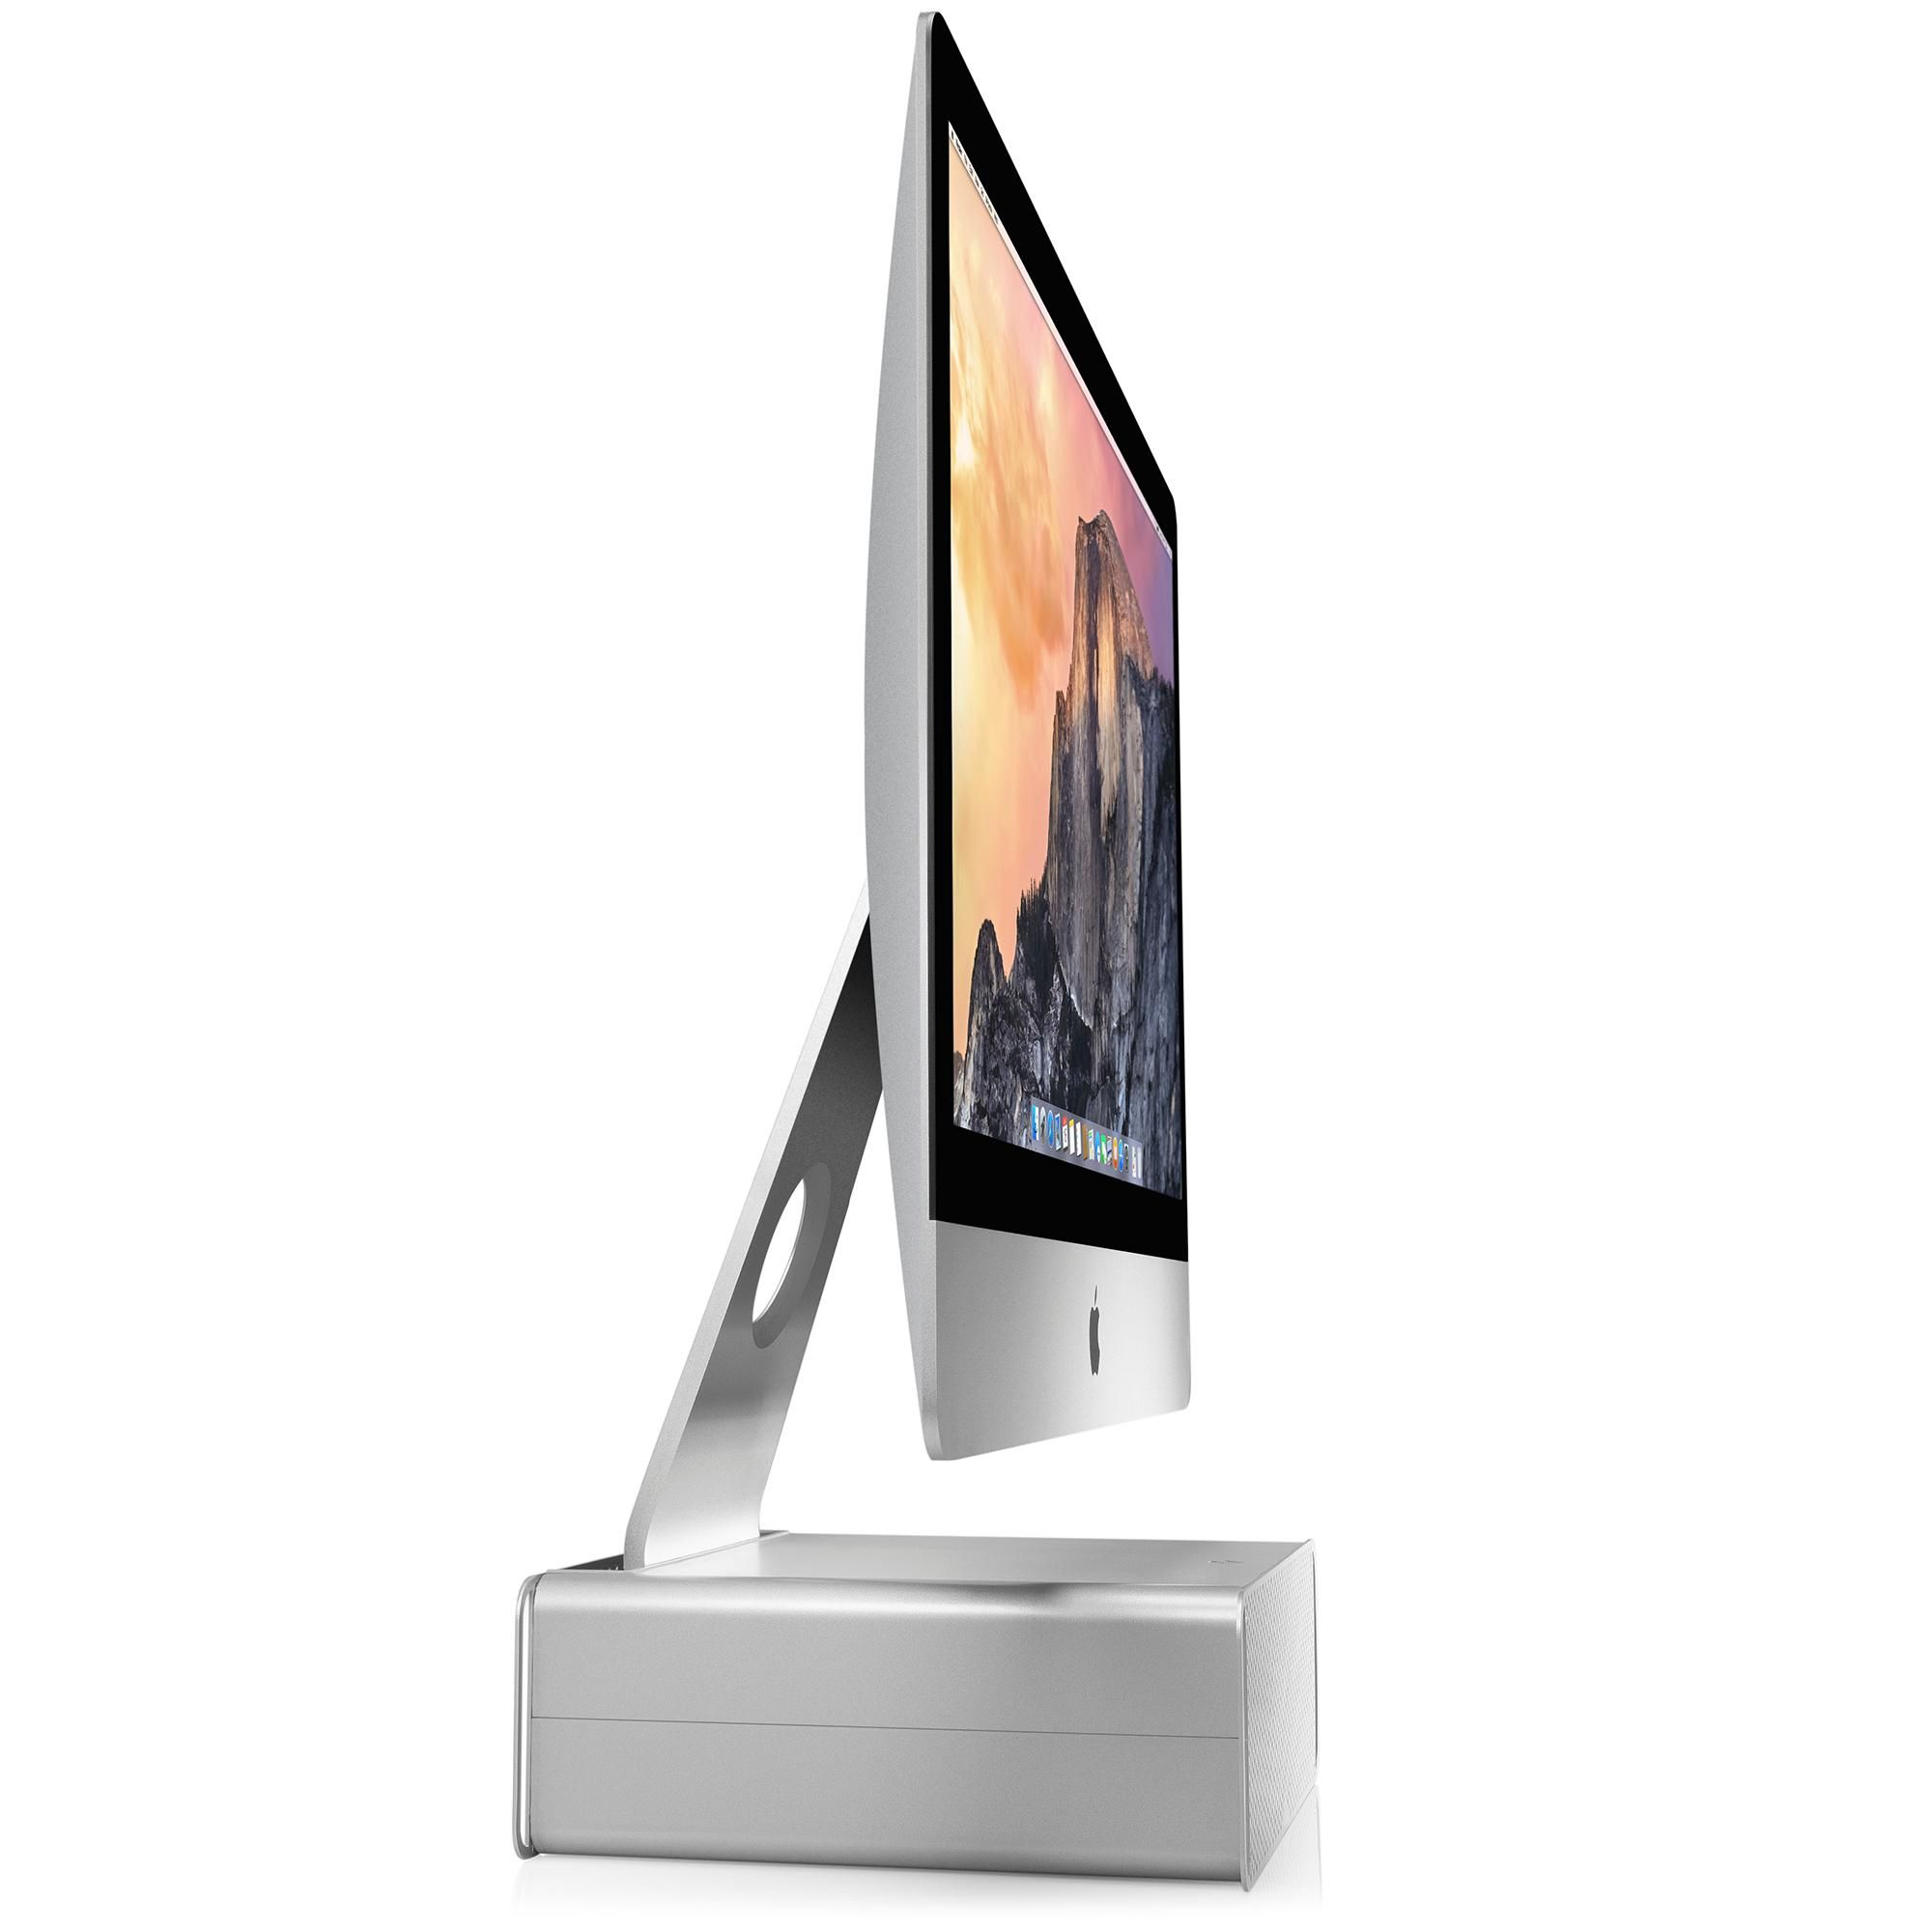 Amazon Com Twelve South Hirise For Imac Height Adjustable Stand With Storage For Imac And Apple Displays Com Adjustable Height Stand Imac Height Adjustable